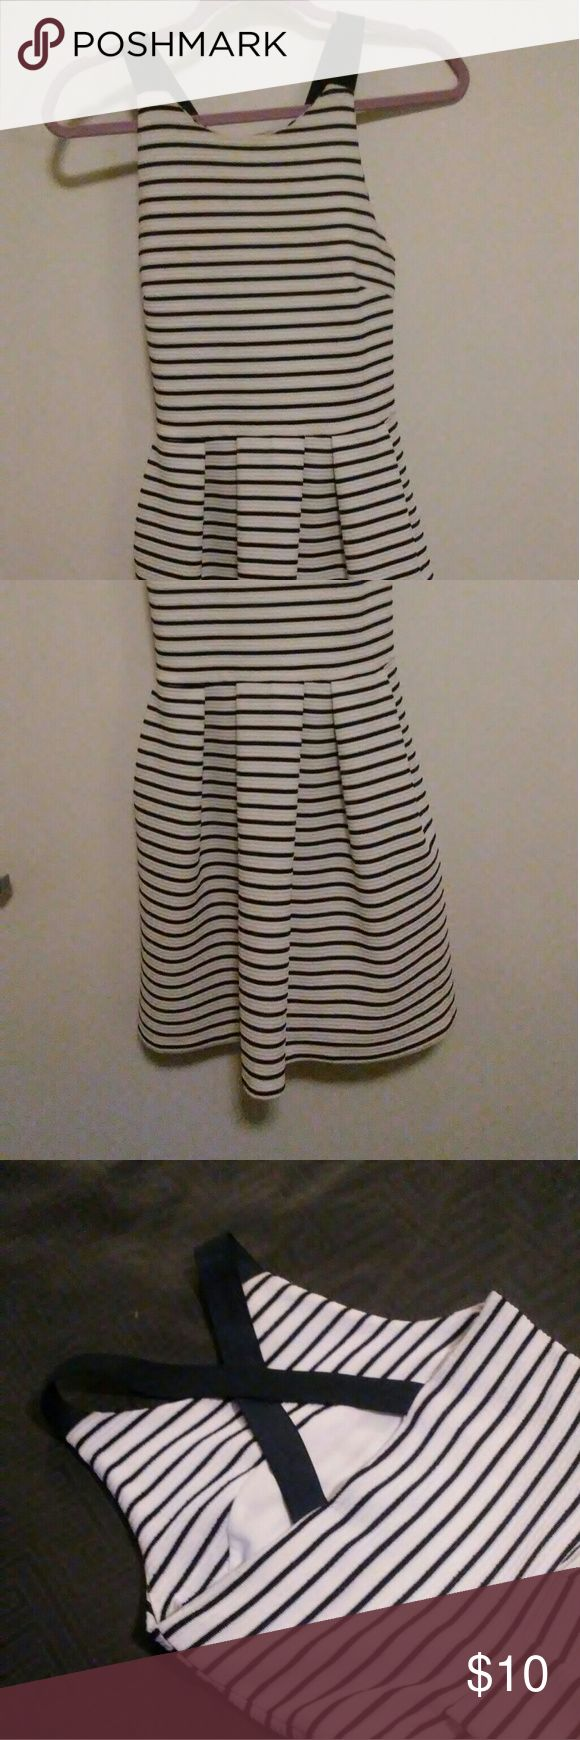 Almost Famous Stripe Criss Cross Back Dress Good condition Almost Famous white/Navy striped dress with cross backs straps.   Size Medium 95% polyester  5% Spandex   Length: 30 inches Chest: 15 inches  Waist: 14 inches Hem: 33 inches  Small hole under right arm (photo) Preowned  No visible stains. Almost Famous Dresses